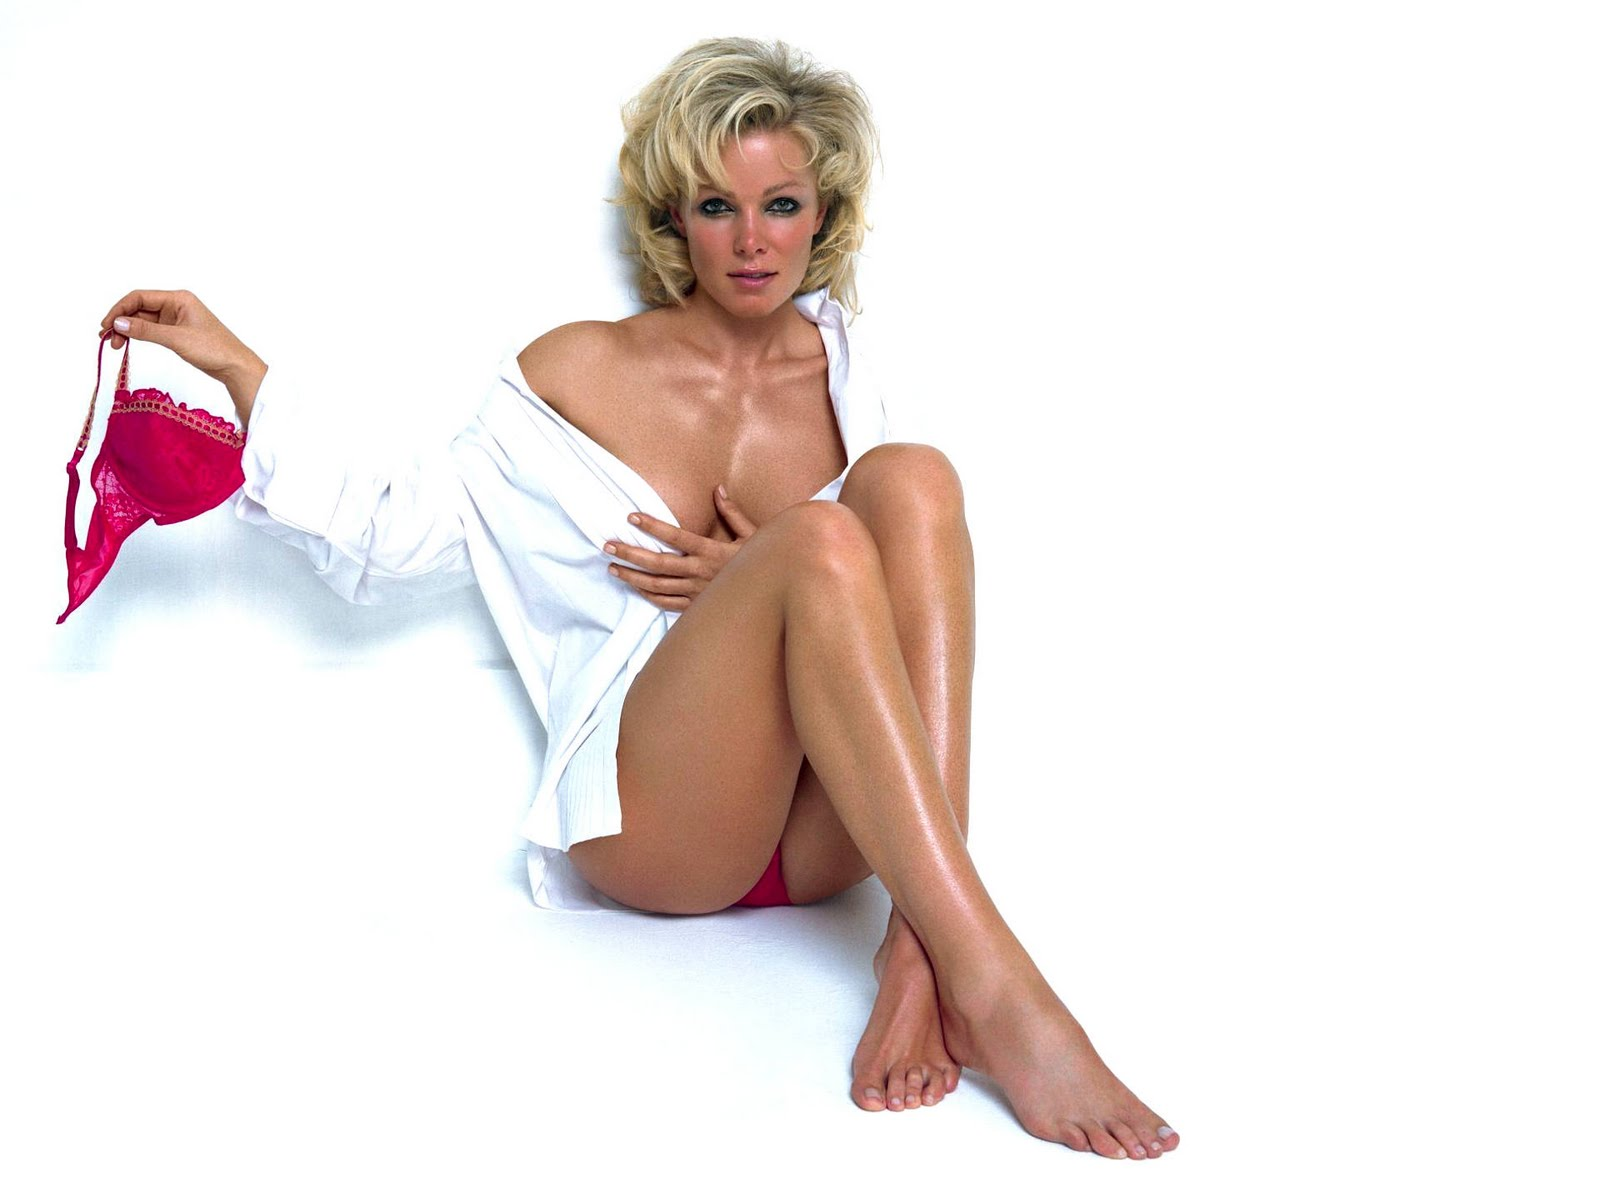 http://1.bp.blogspot.com/-FcClbSfIv4M/TXdcgT0yRpI/AAAAAAAABDw/UEa8Y6NfxIY/s1600/nell_mcAndrew_hot_actress_wallpapers_29.jpg